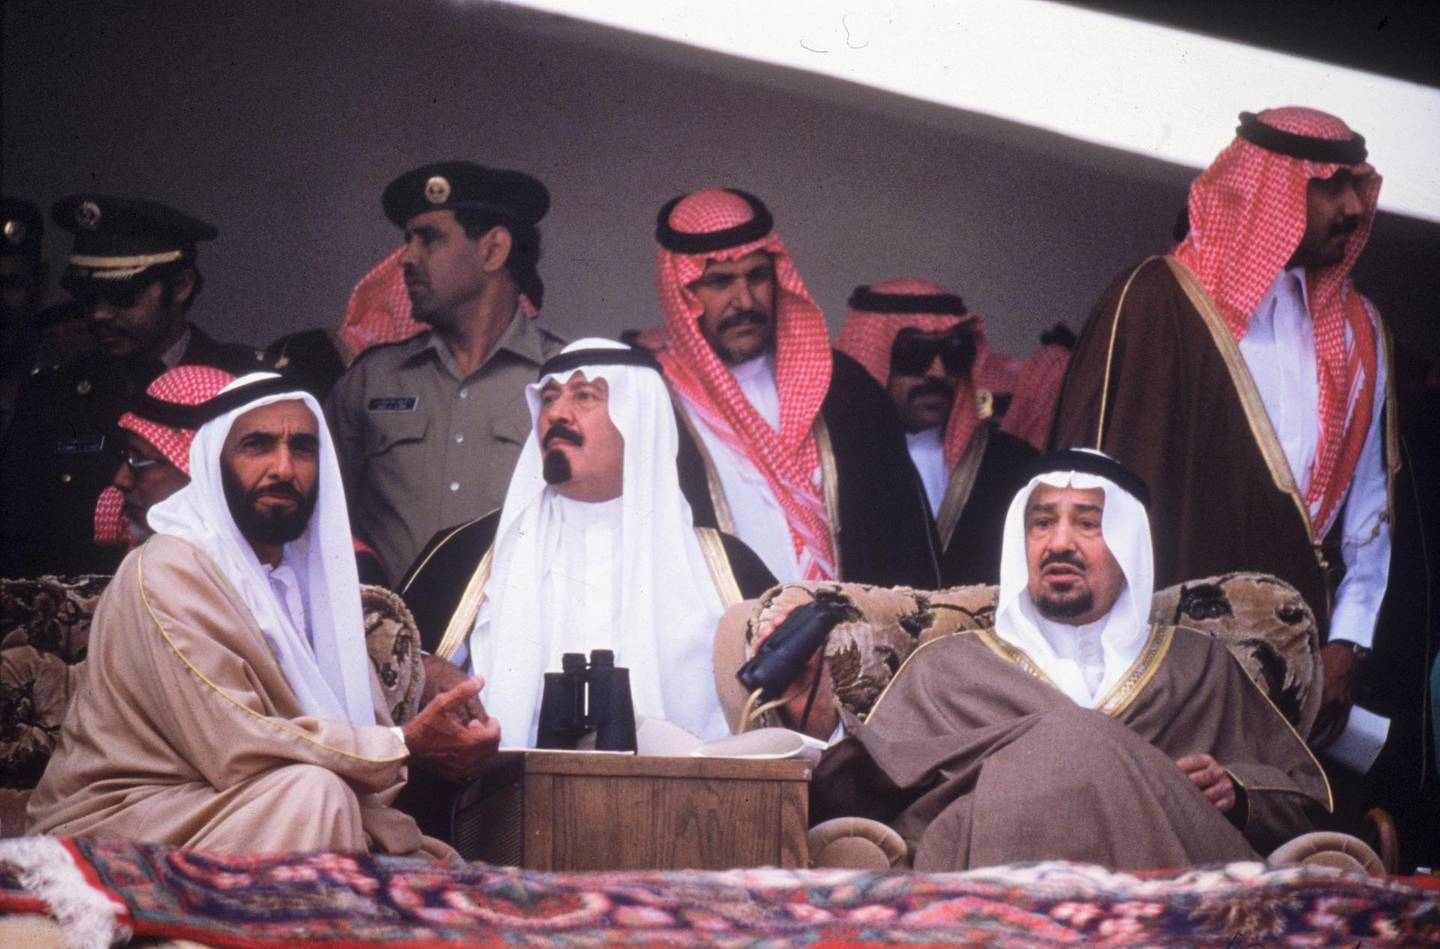 circa 1980:  From left to right, Sheikh Zayed bin Sultan Al-Nahyan, President of the UAE (United Arab Emirates), Prince Abdullah Ibn Abdul Aziz, the Crown Prince of Saudi Arabia and King Khalid of Saudi Arabia.  (Photo by Hulton Archive/Getty Images)